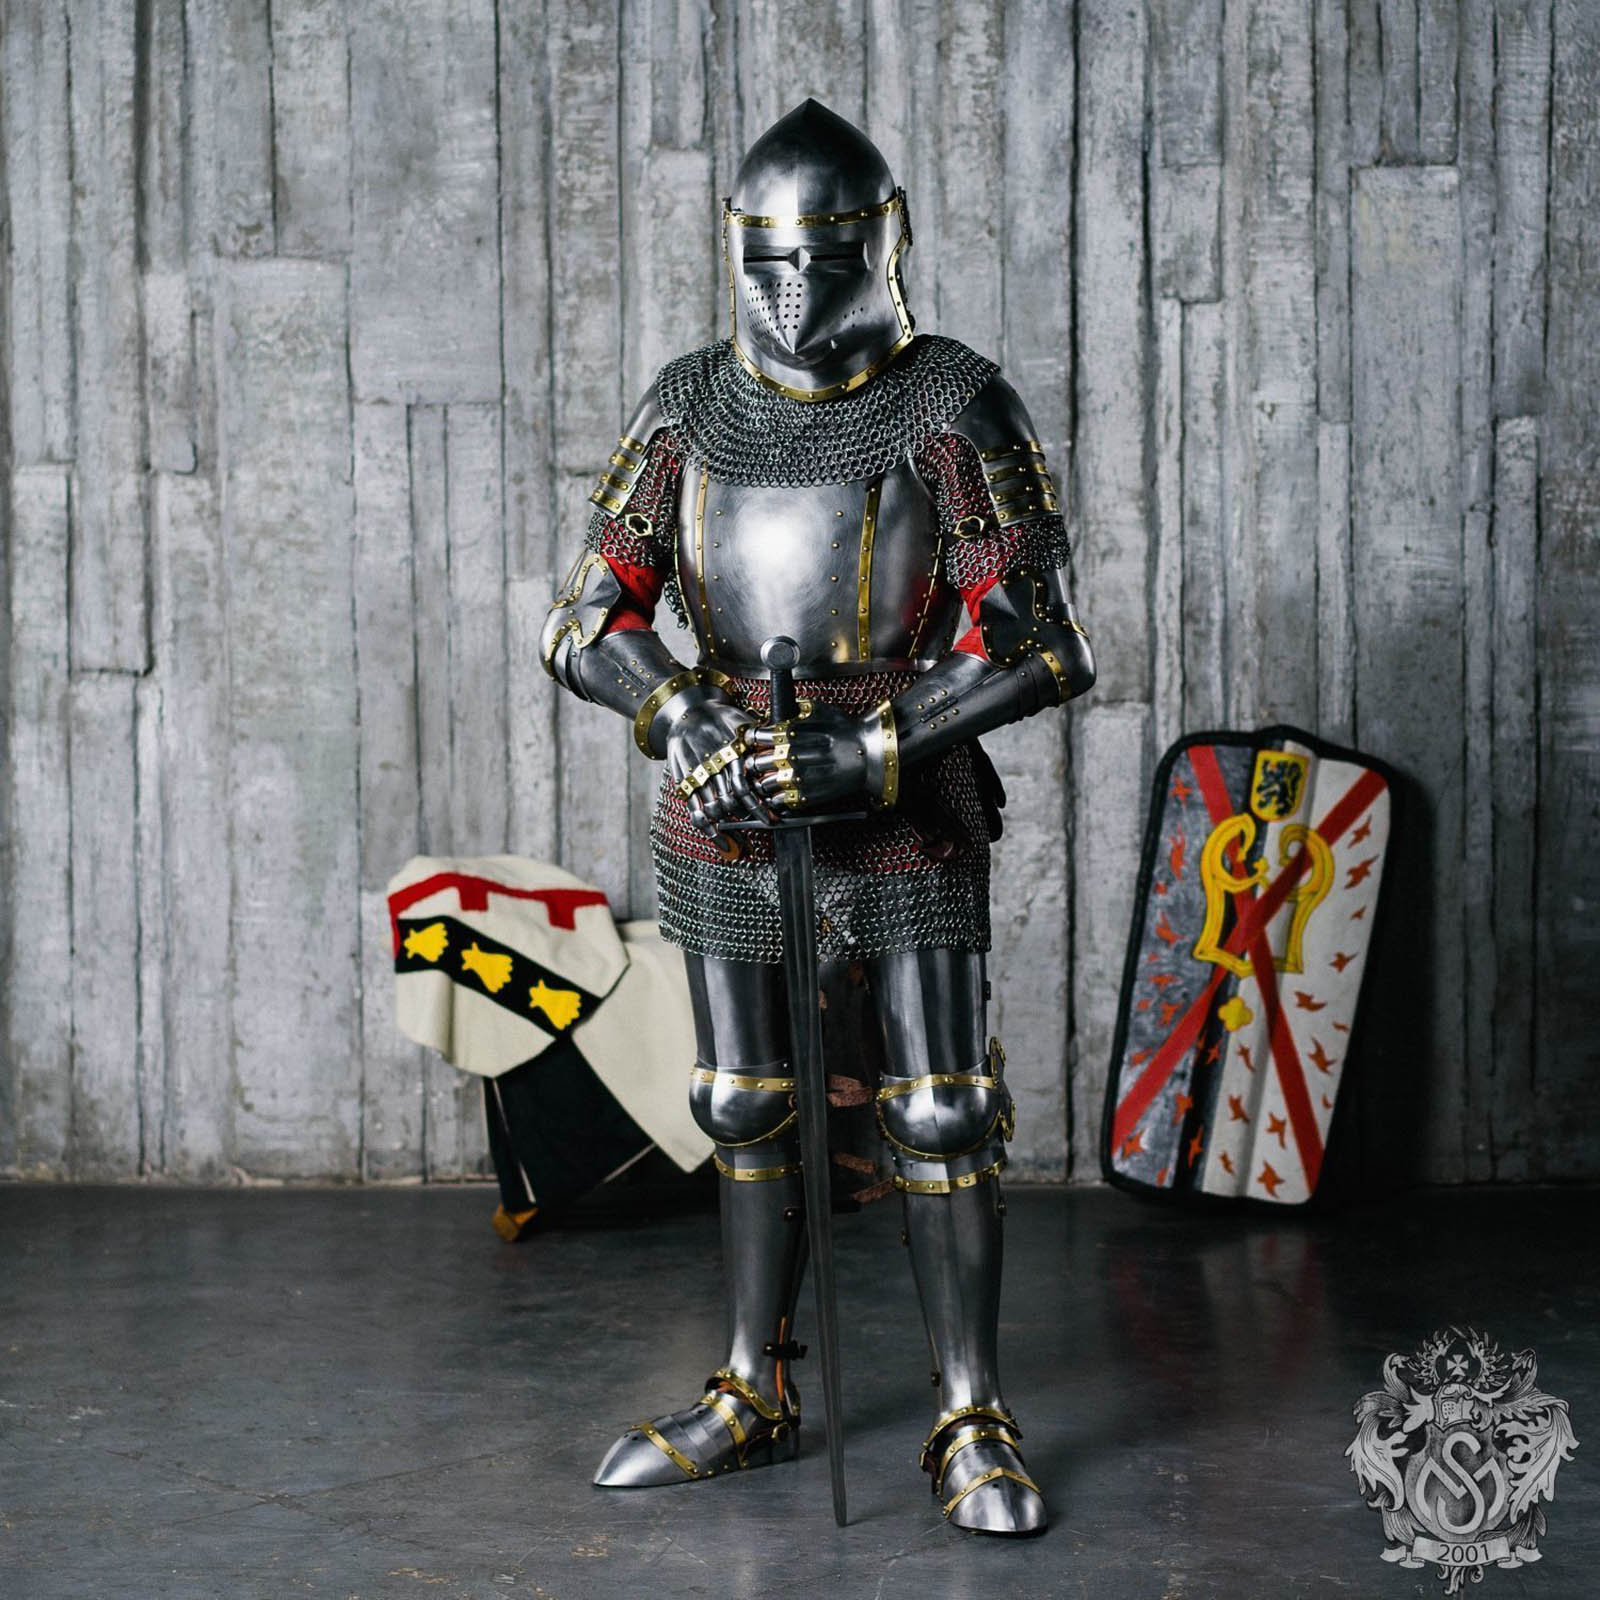 Plate armor — Medieval steel and metal body armor plates